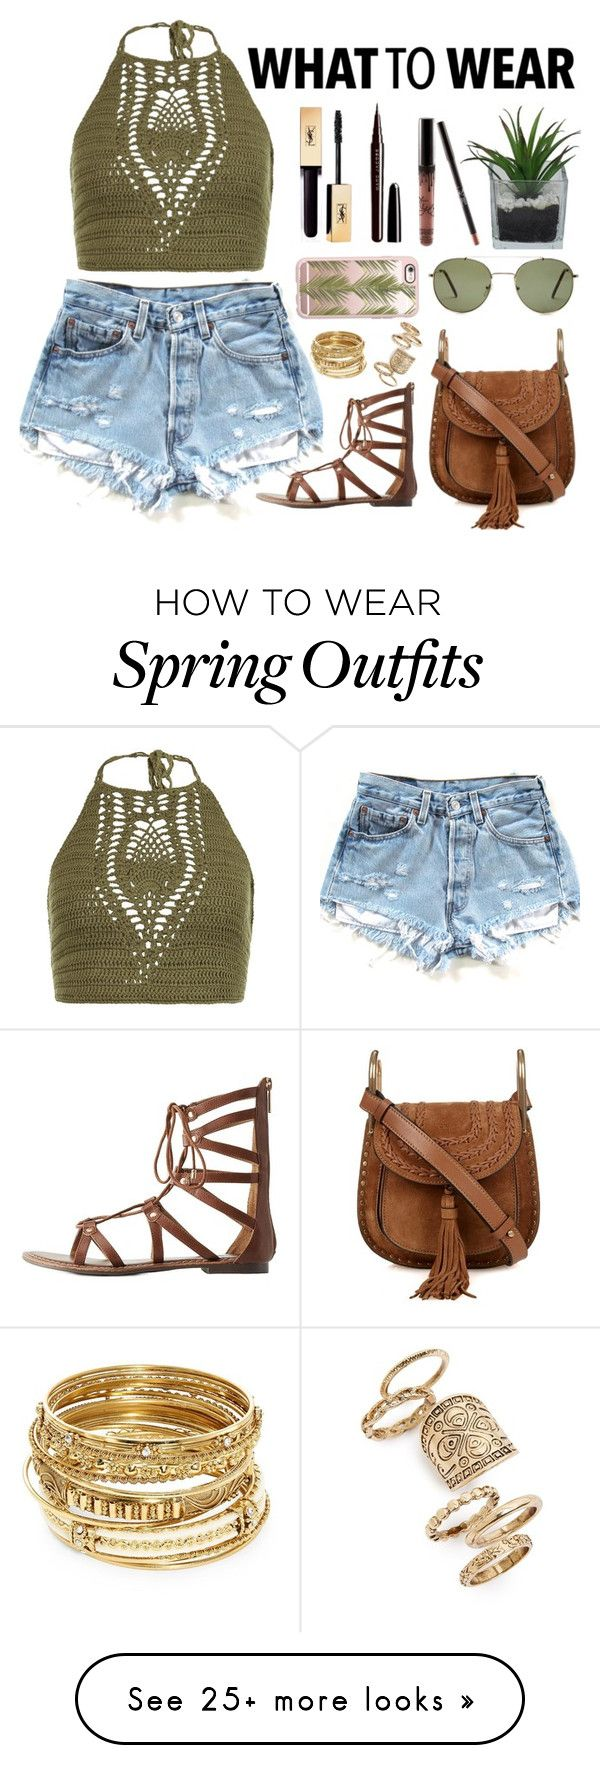 """road trip outfit"" by jenwolf2121 on Polyvore featuring New Look, Charlotte Russe, Chloé, Forever 21, Casetify, ABS by Allen Schwartz, Topshop, Marc Jacobs and Threshold"